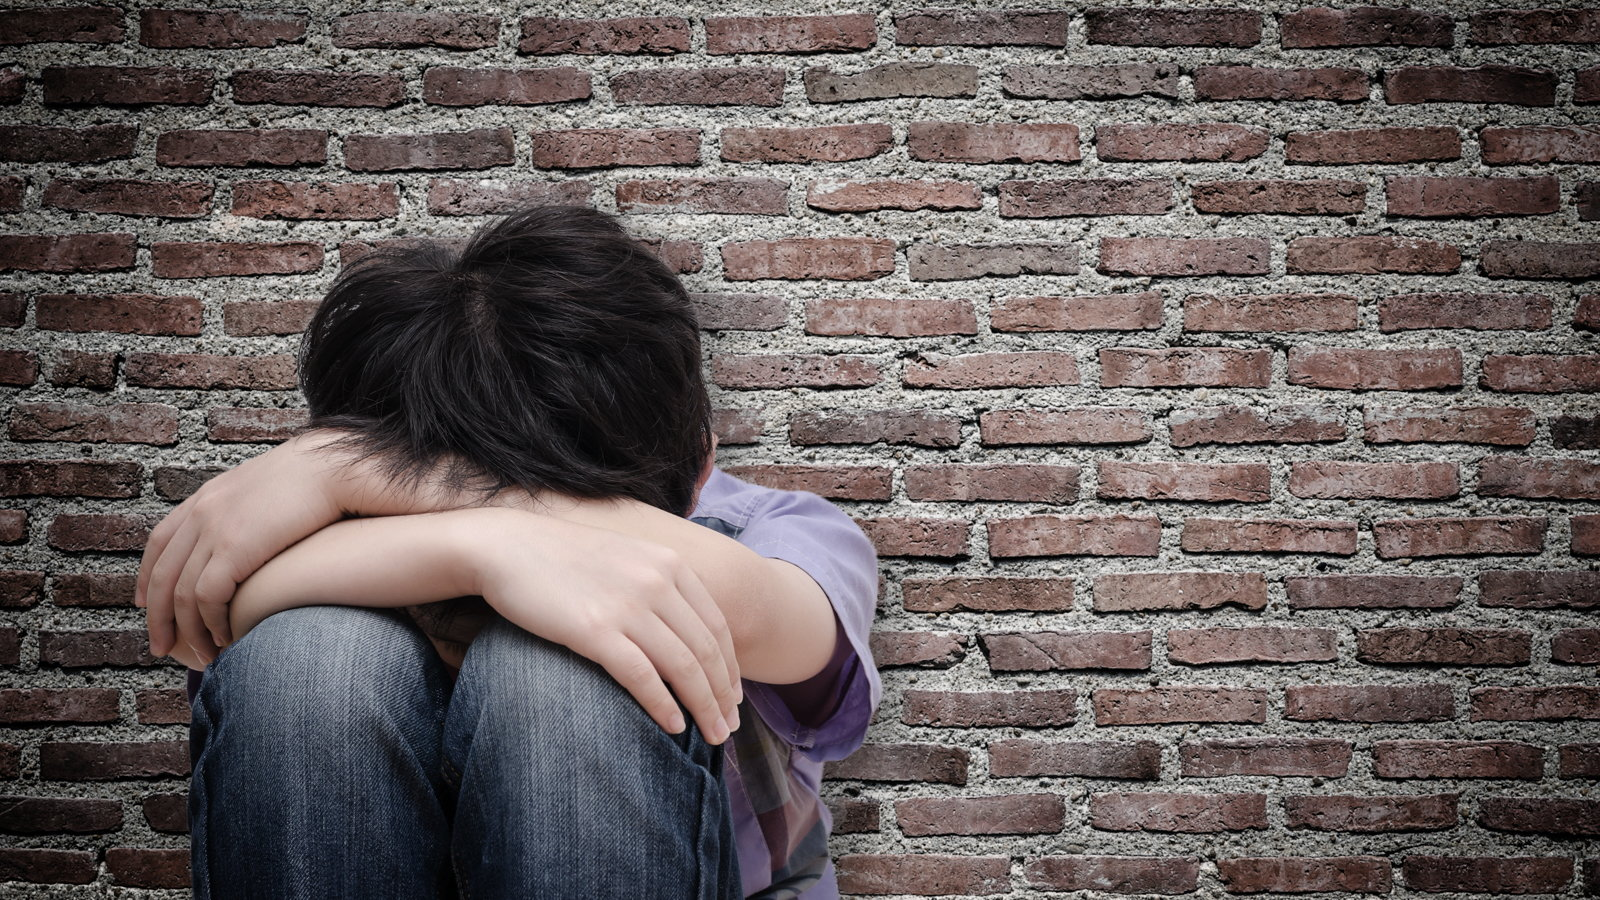 Cutting And Self Harm In Teens What To Do